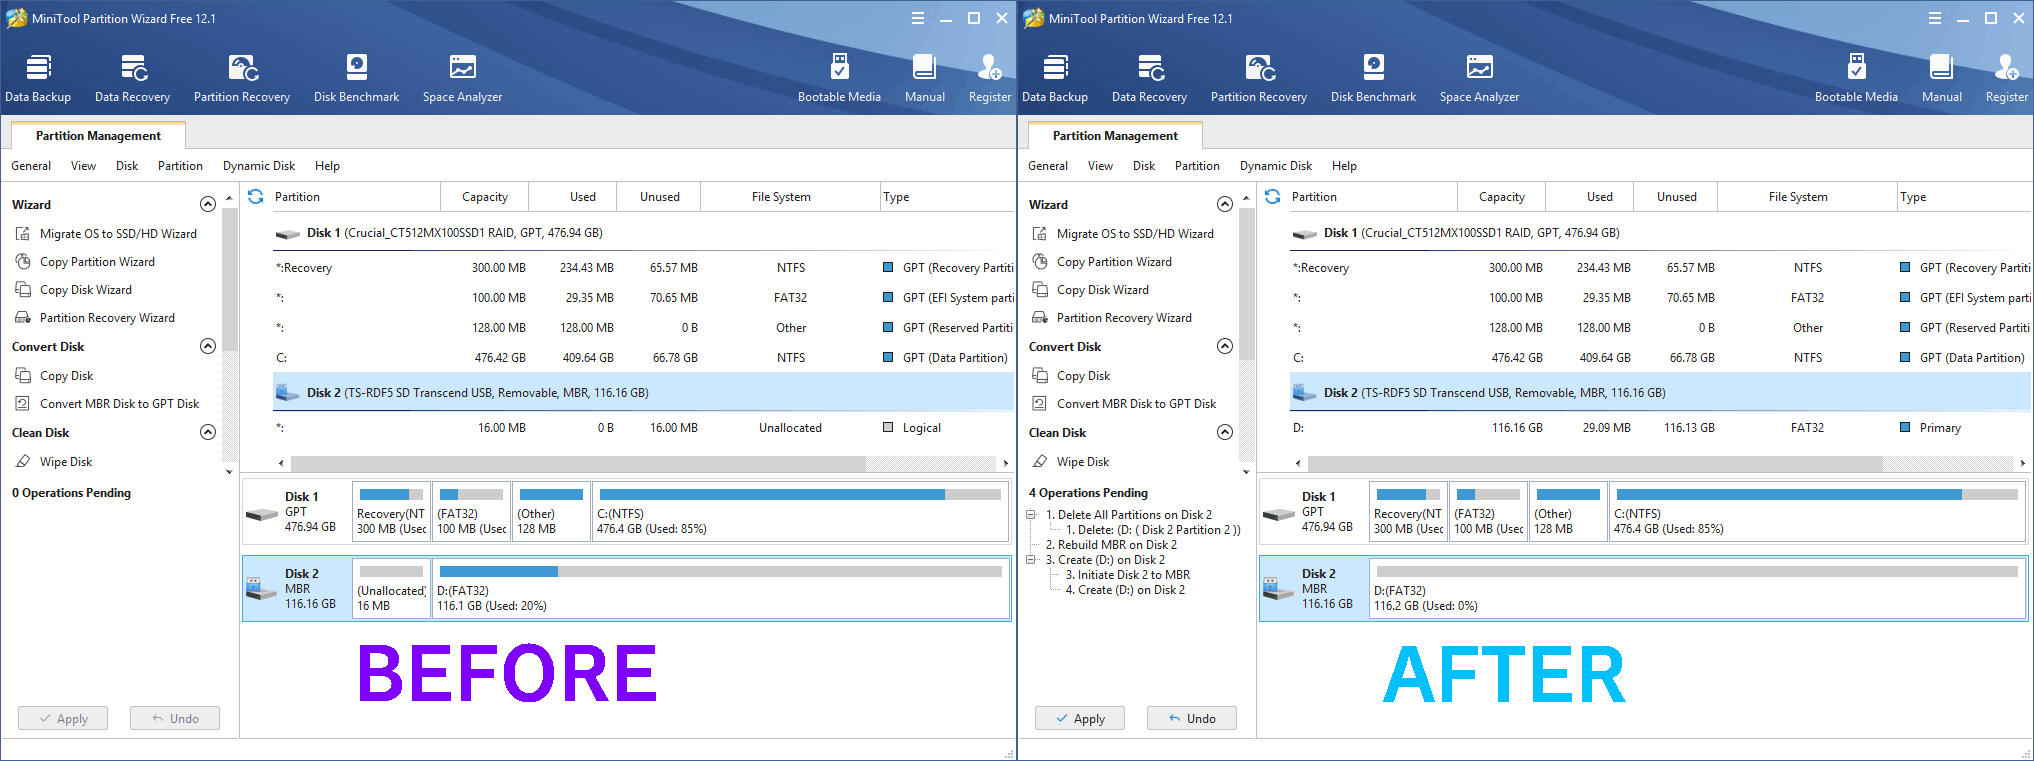 minitool_merge_partitions-png.218273